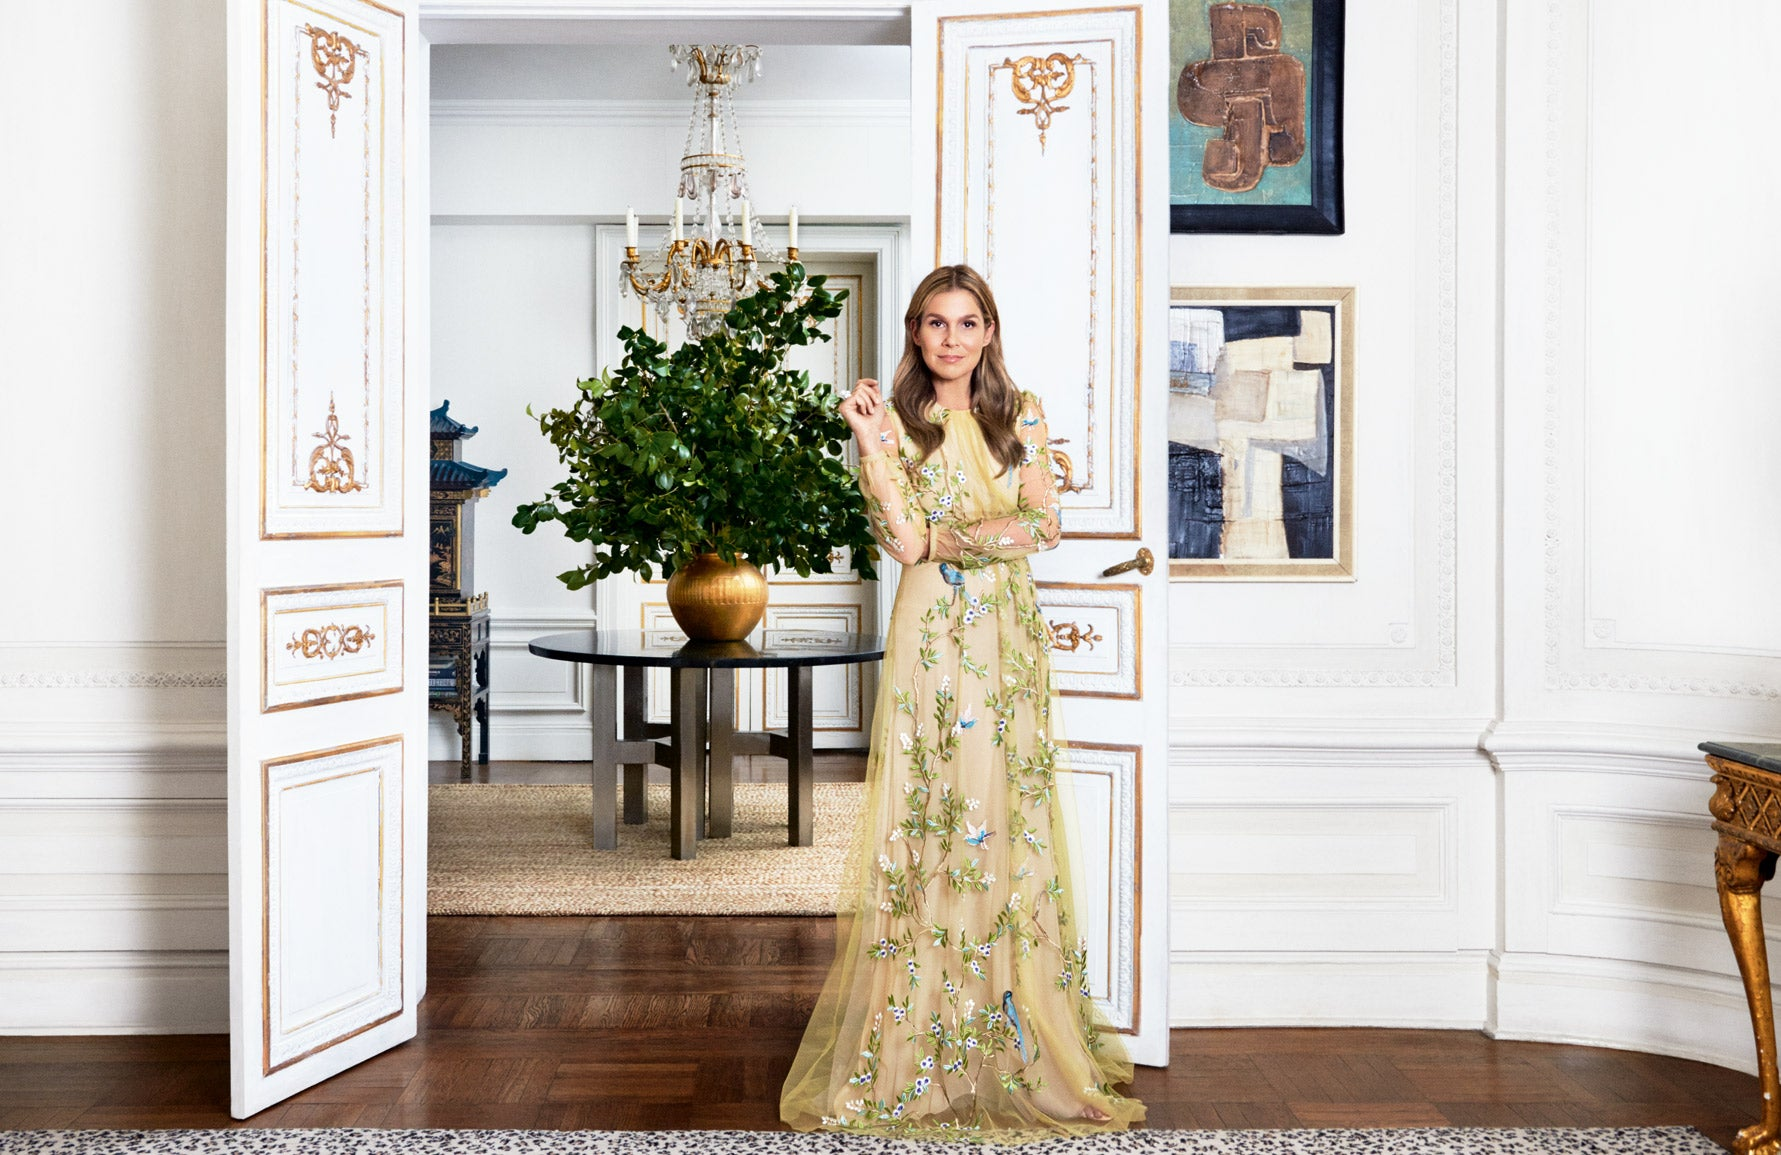 Holiday Entertaining with Aerin Lauder | Read more in The Luxurist